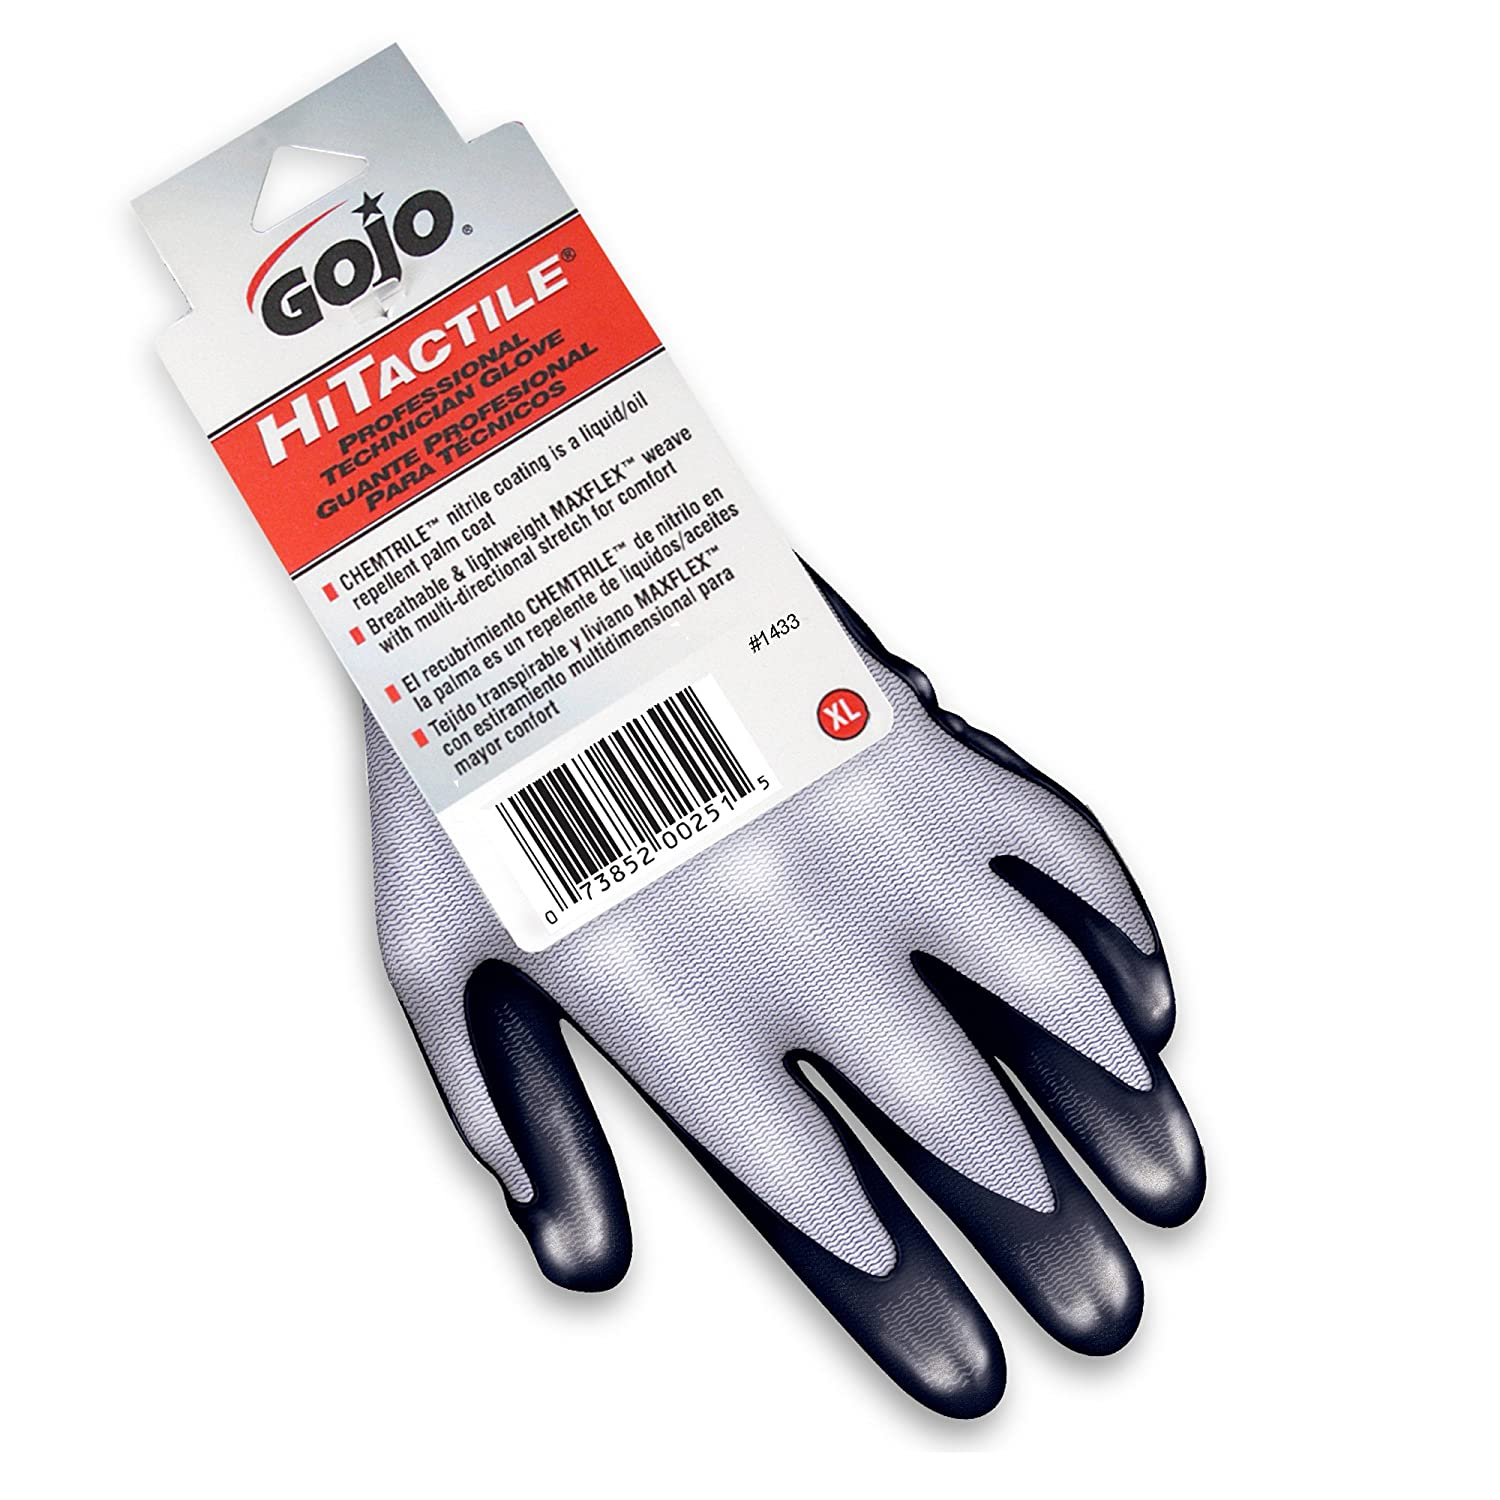 GOJO 1433-12 Hitactile Nylon Professional Technician Glove, X-Large (Pack of 12) by Gojo  B008QEX2WK